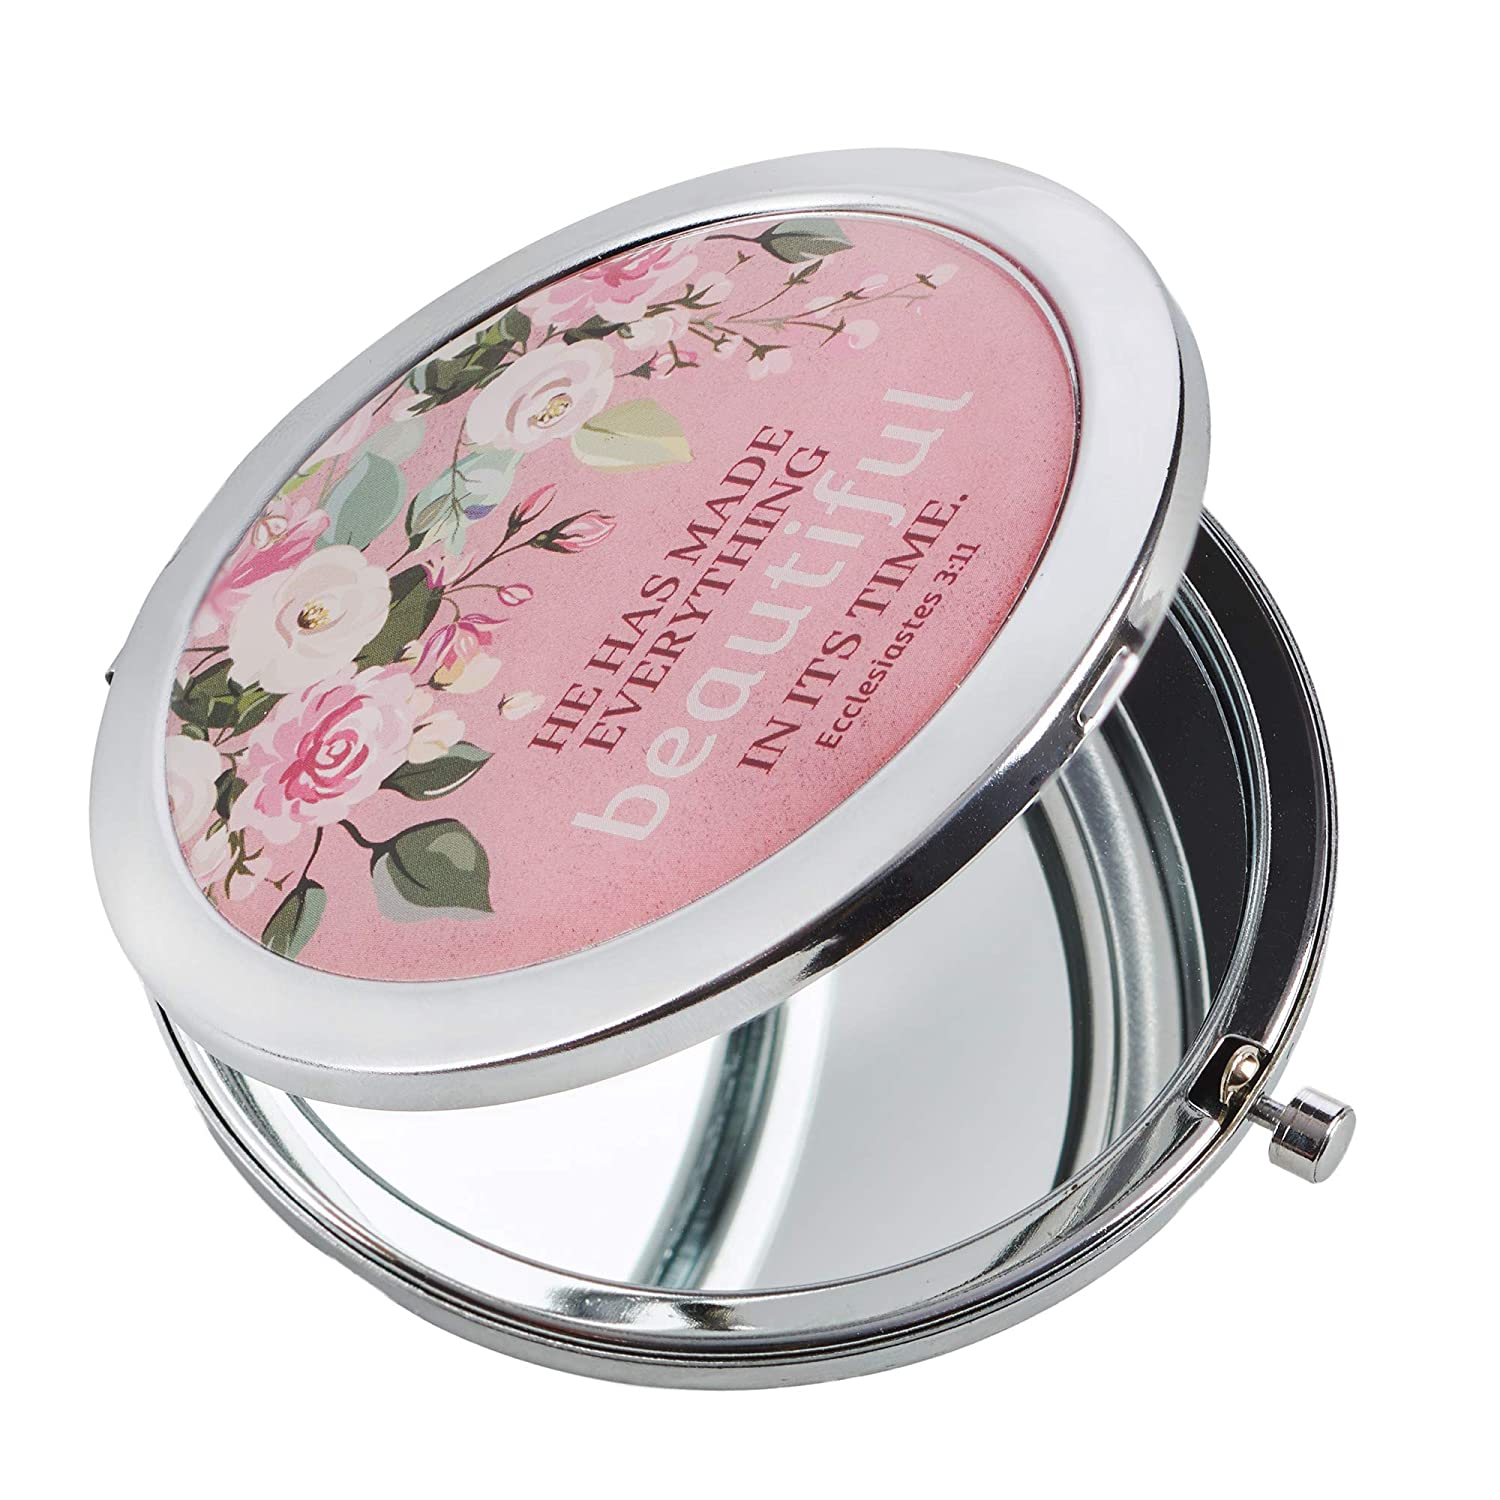 He Has Made Everything Beautiful Folding Compact Mirror 2x Magnification Ultra Portable for Purses Travel- Ecclesiastes 3 11 Bible Verse, Inspirational Gift Women Ladies Retreats Weddings Showers